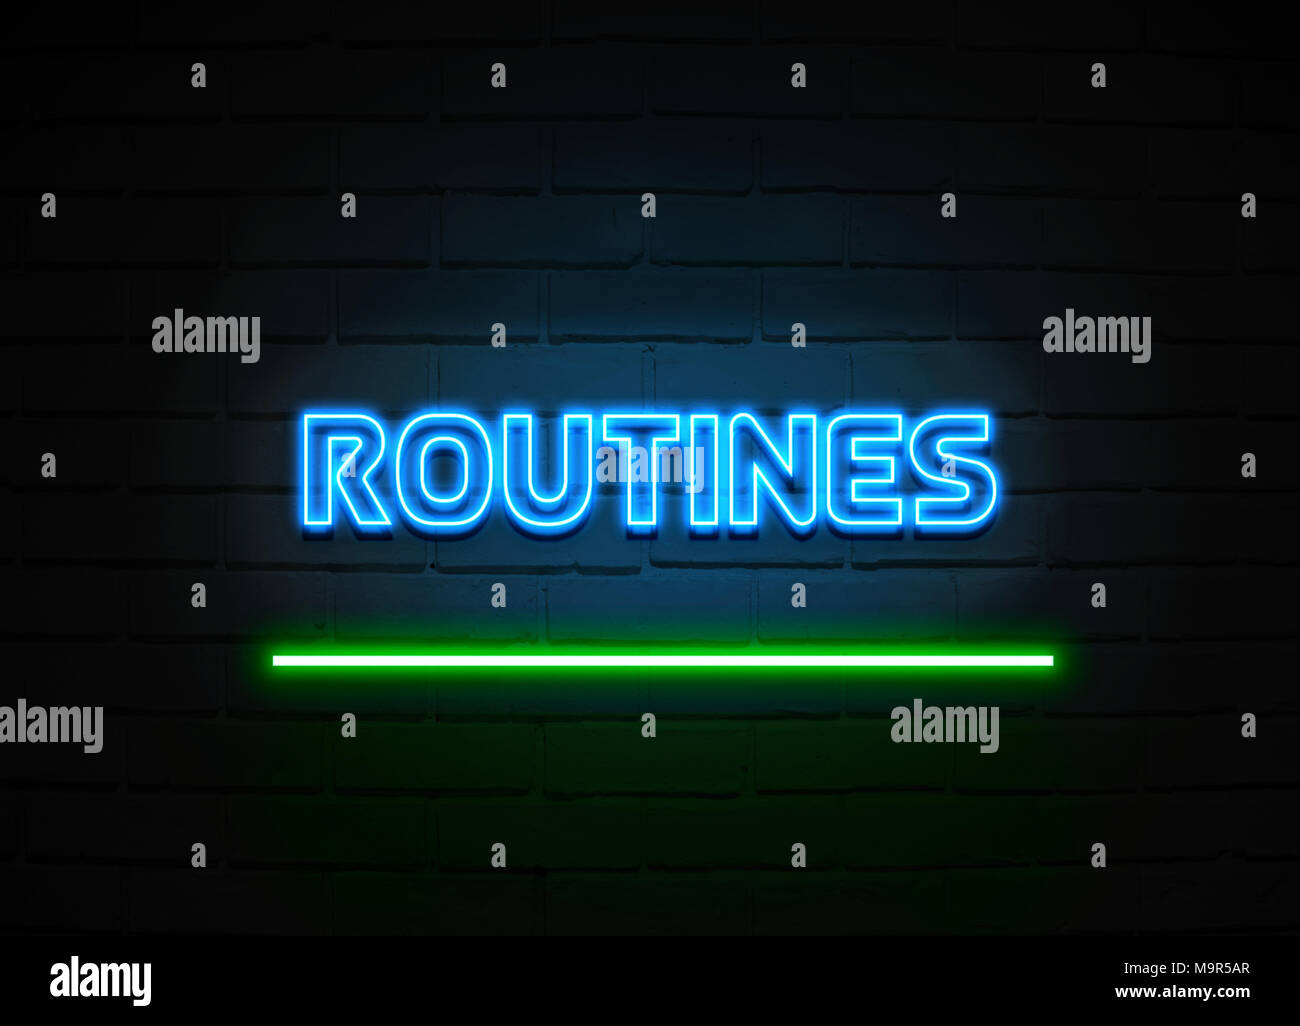 Routines neon sign - Glowing Neon Sign on brickwall wall - 3D rendered royalty free stock illustration. - Stock Image